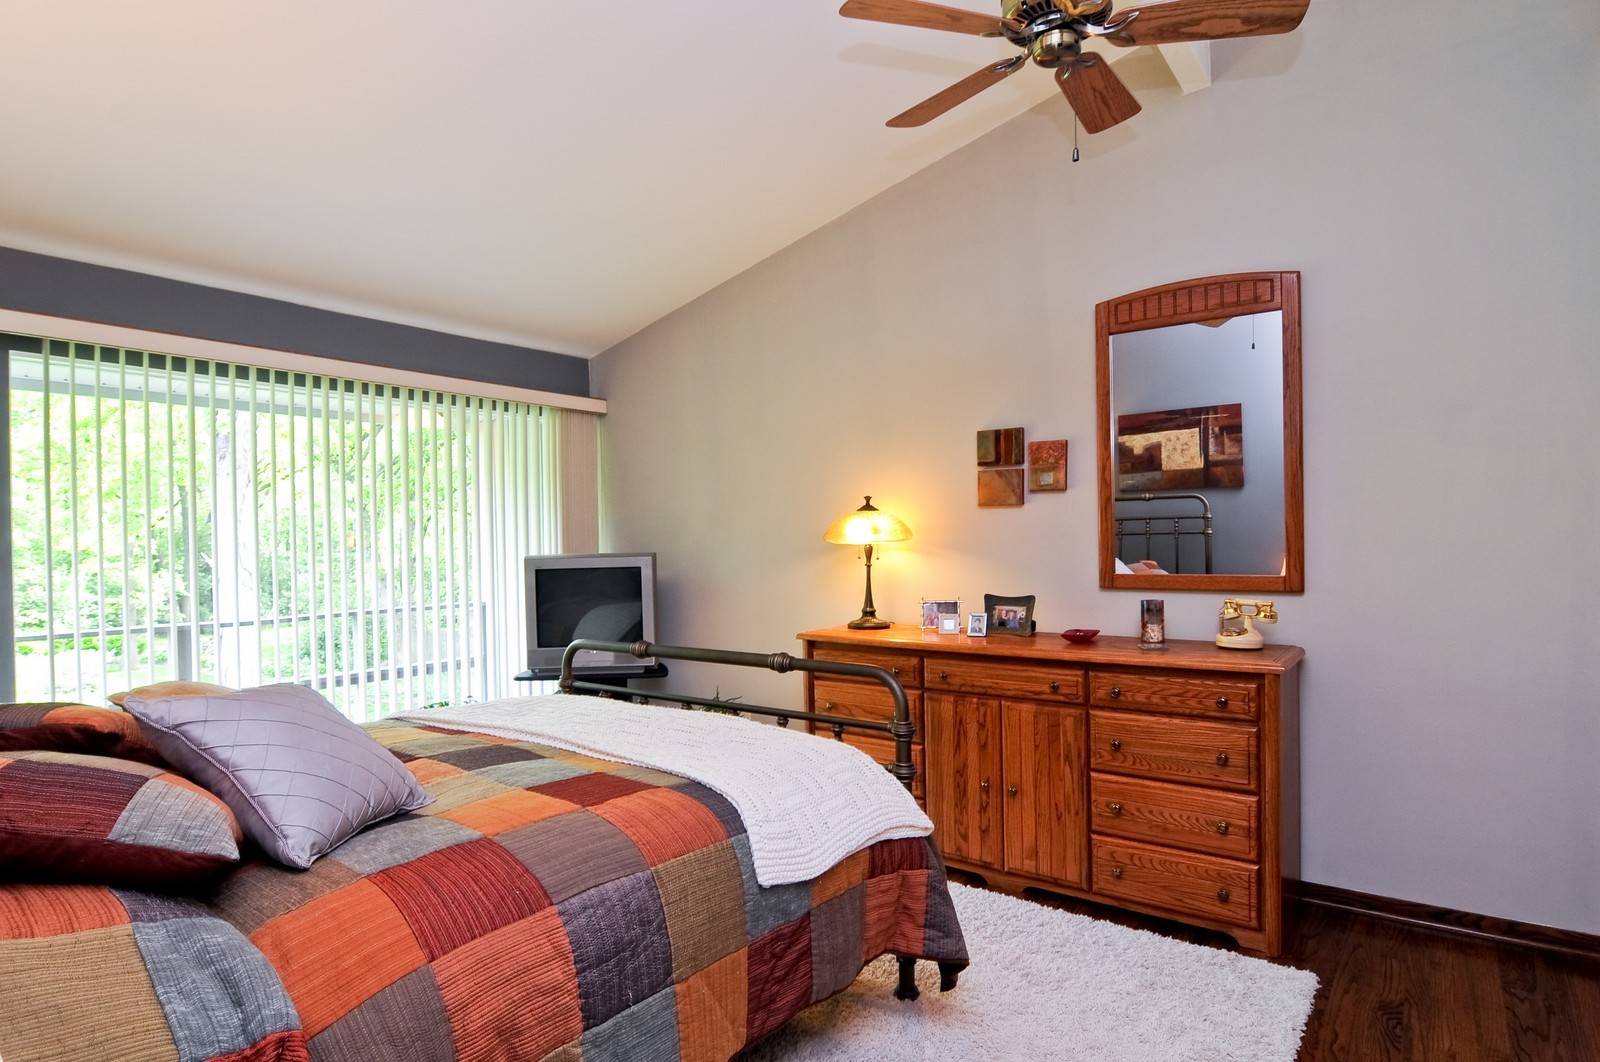 Real Estate Photography - 14185 W August Zupec, Wadsworth, IL, 60083 - Master Bedroom